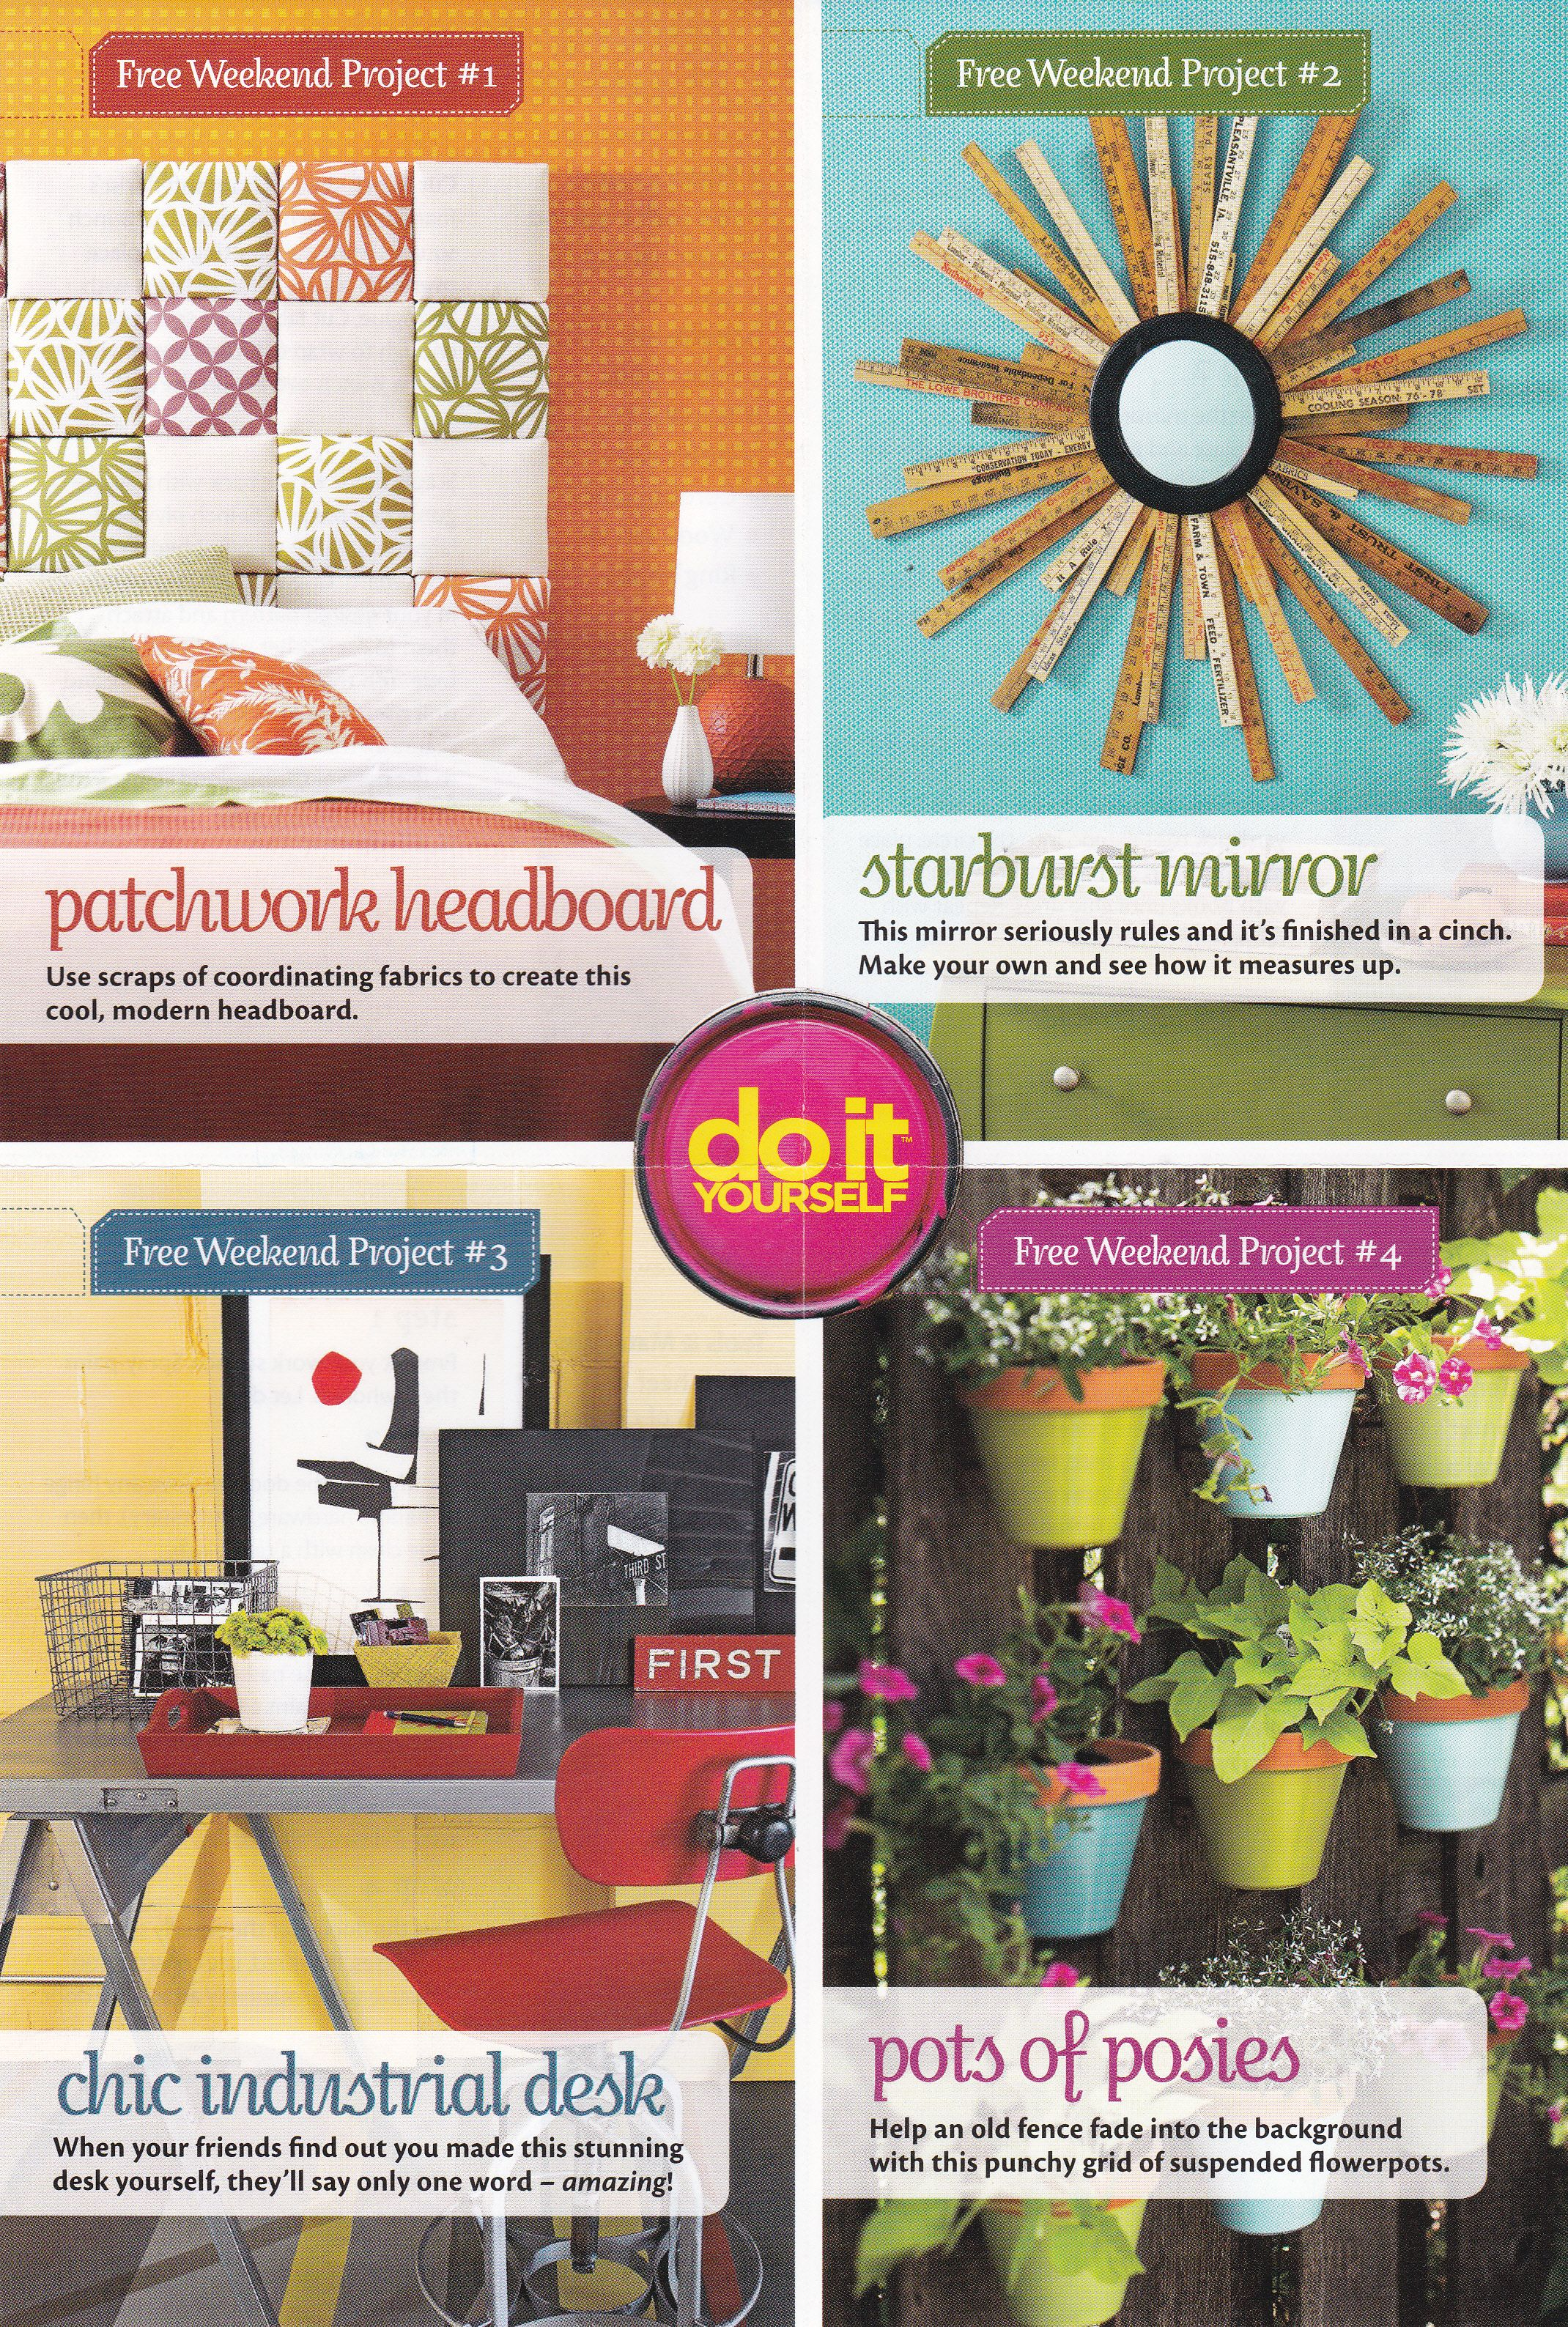 Diy weekend projects 1 2 3 4 diy projects to try pinterest diy weekend projects 1 2 3 4 solutioingenieria Gallery